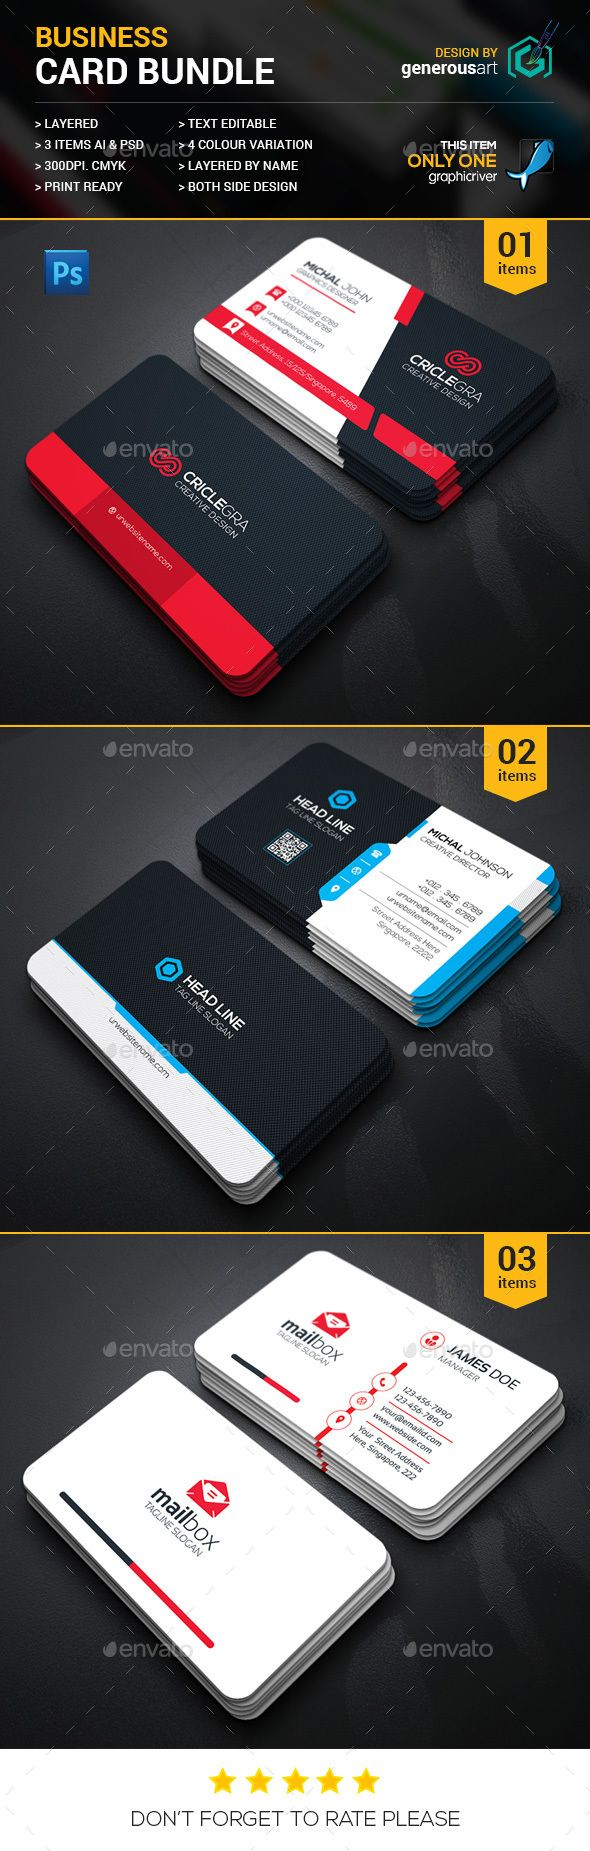 The 58 best unique business card inspiration images on pinterest high quality business 3 in 1 reheart Choice Image